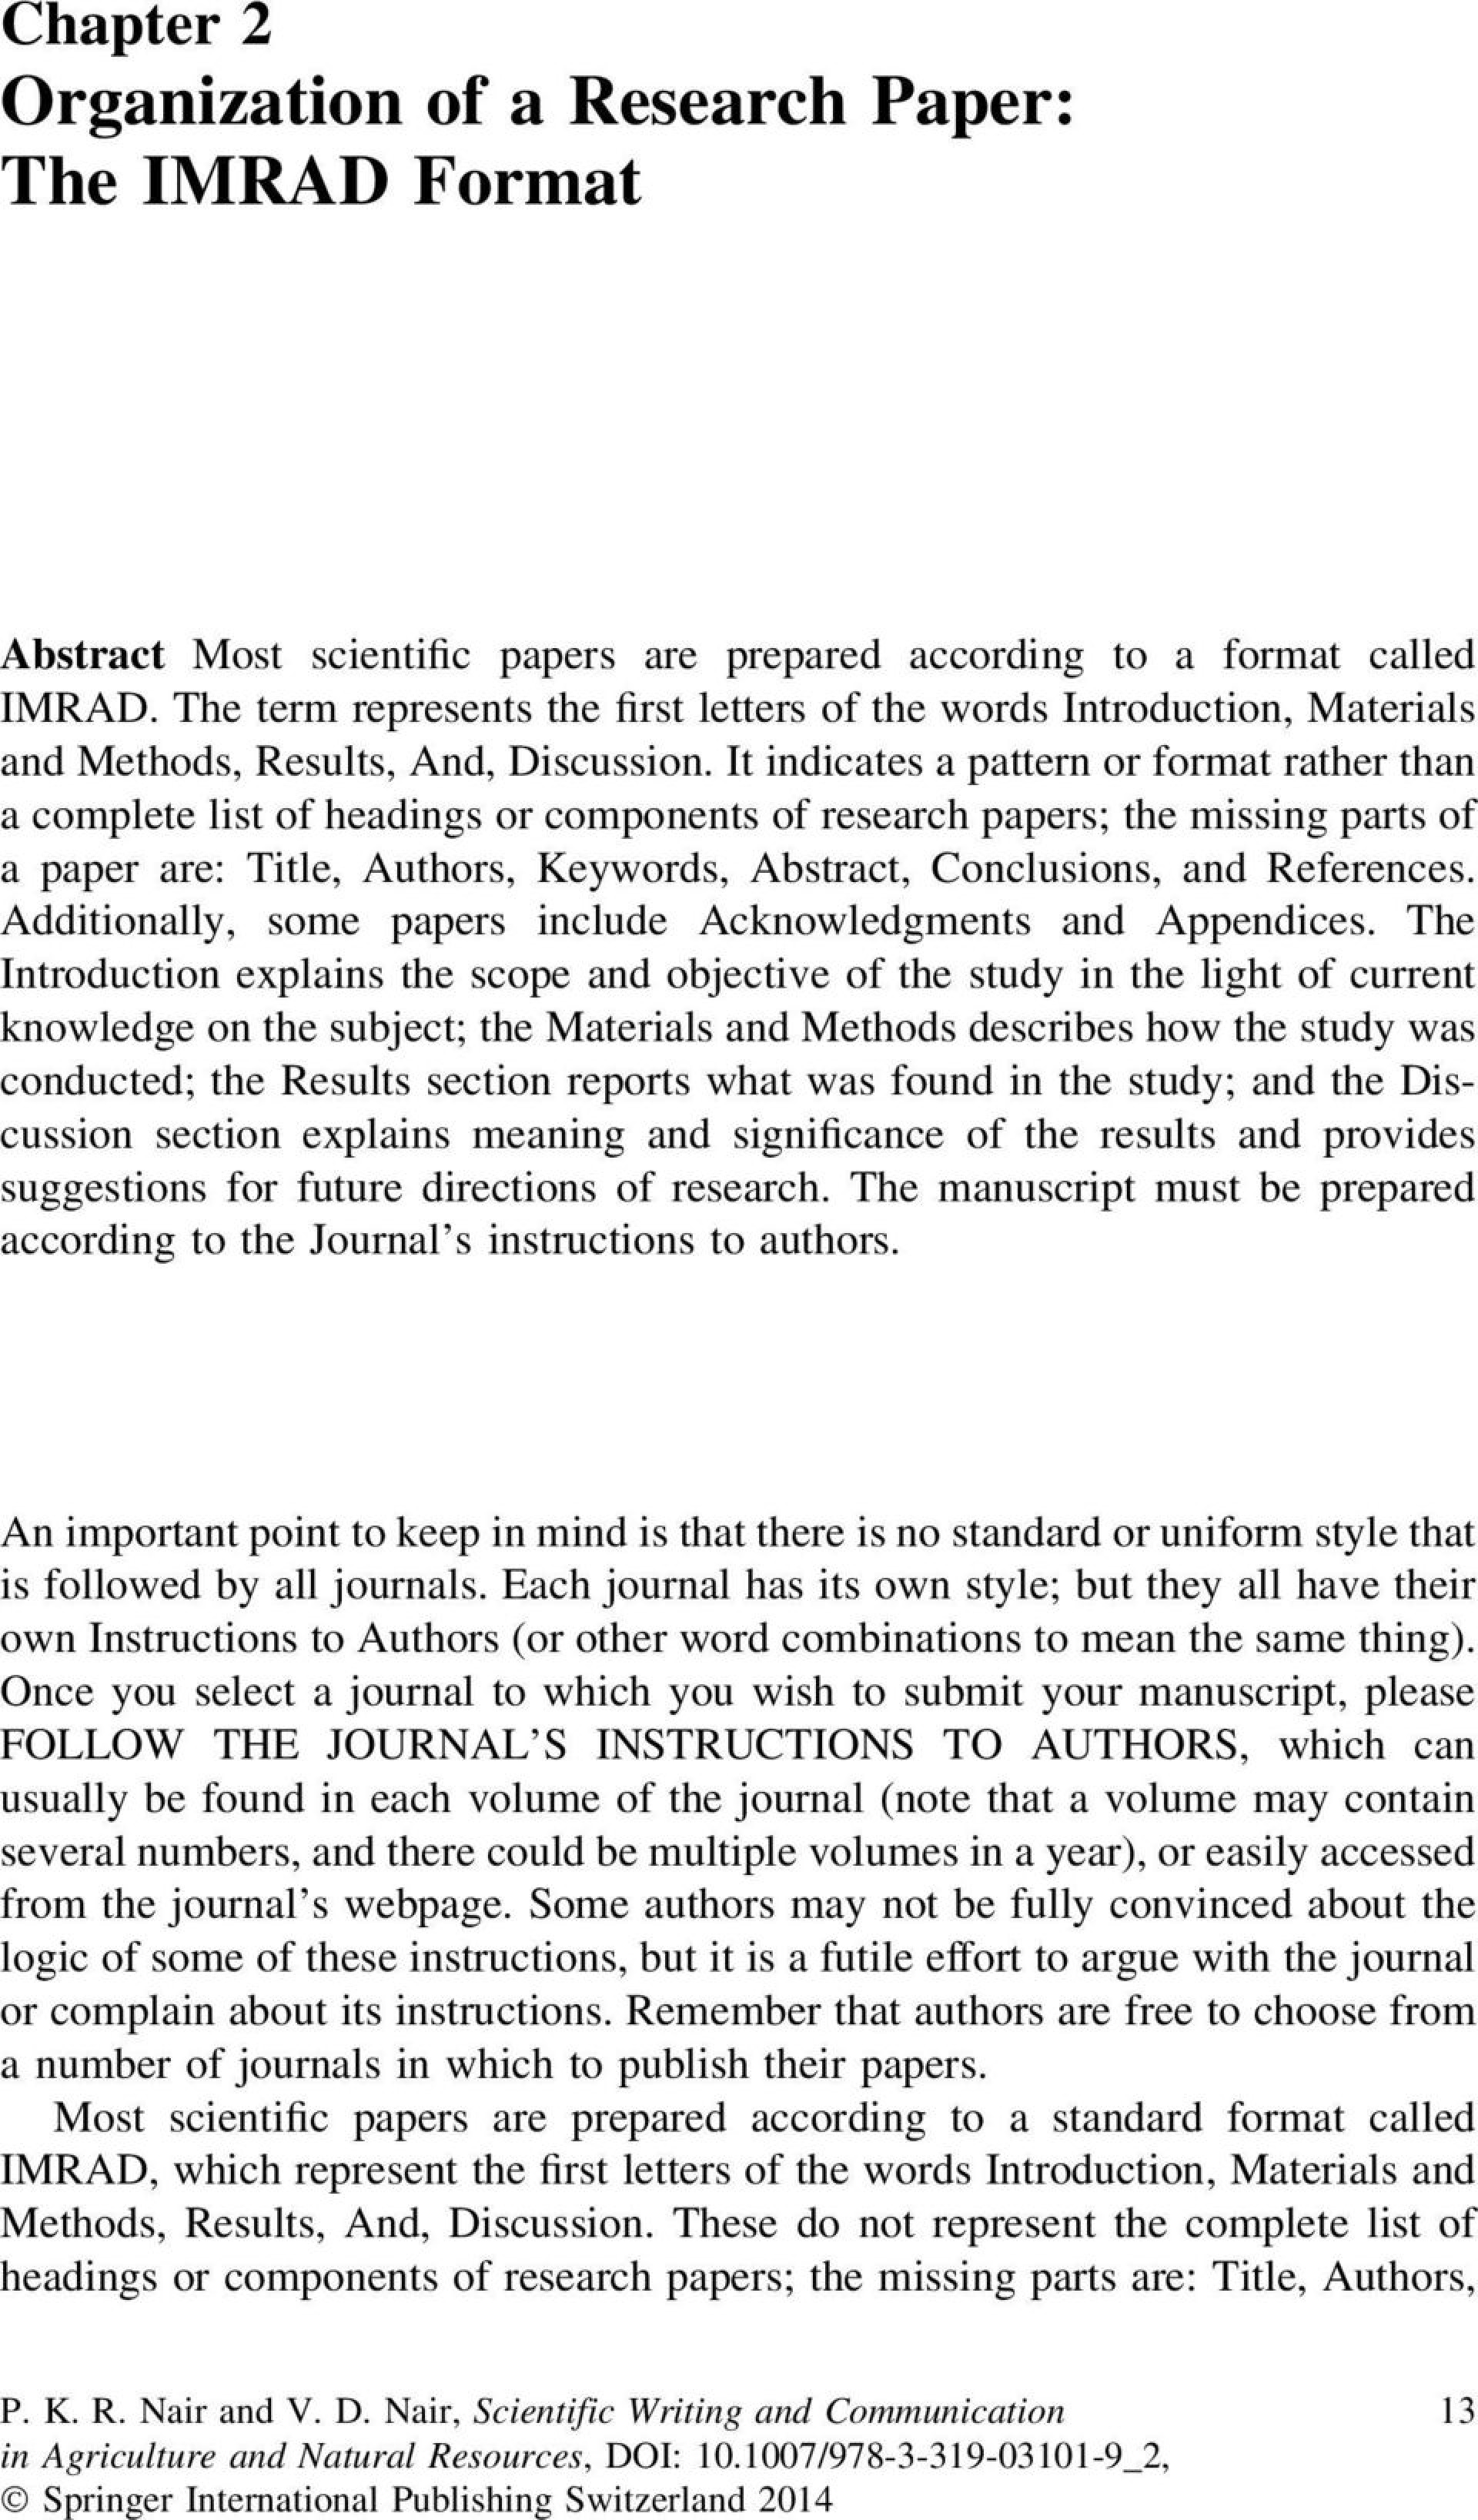 008 Research Paper Example Of Imrad Pdf Page 1 Stupendous Sample 1920